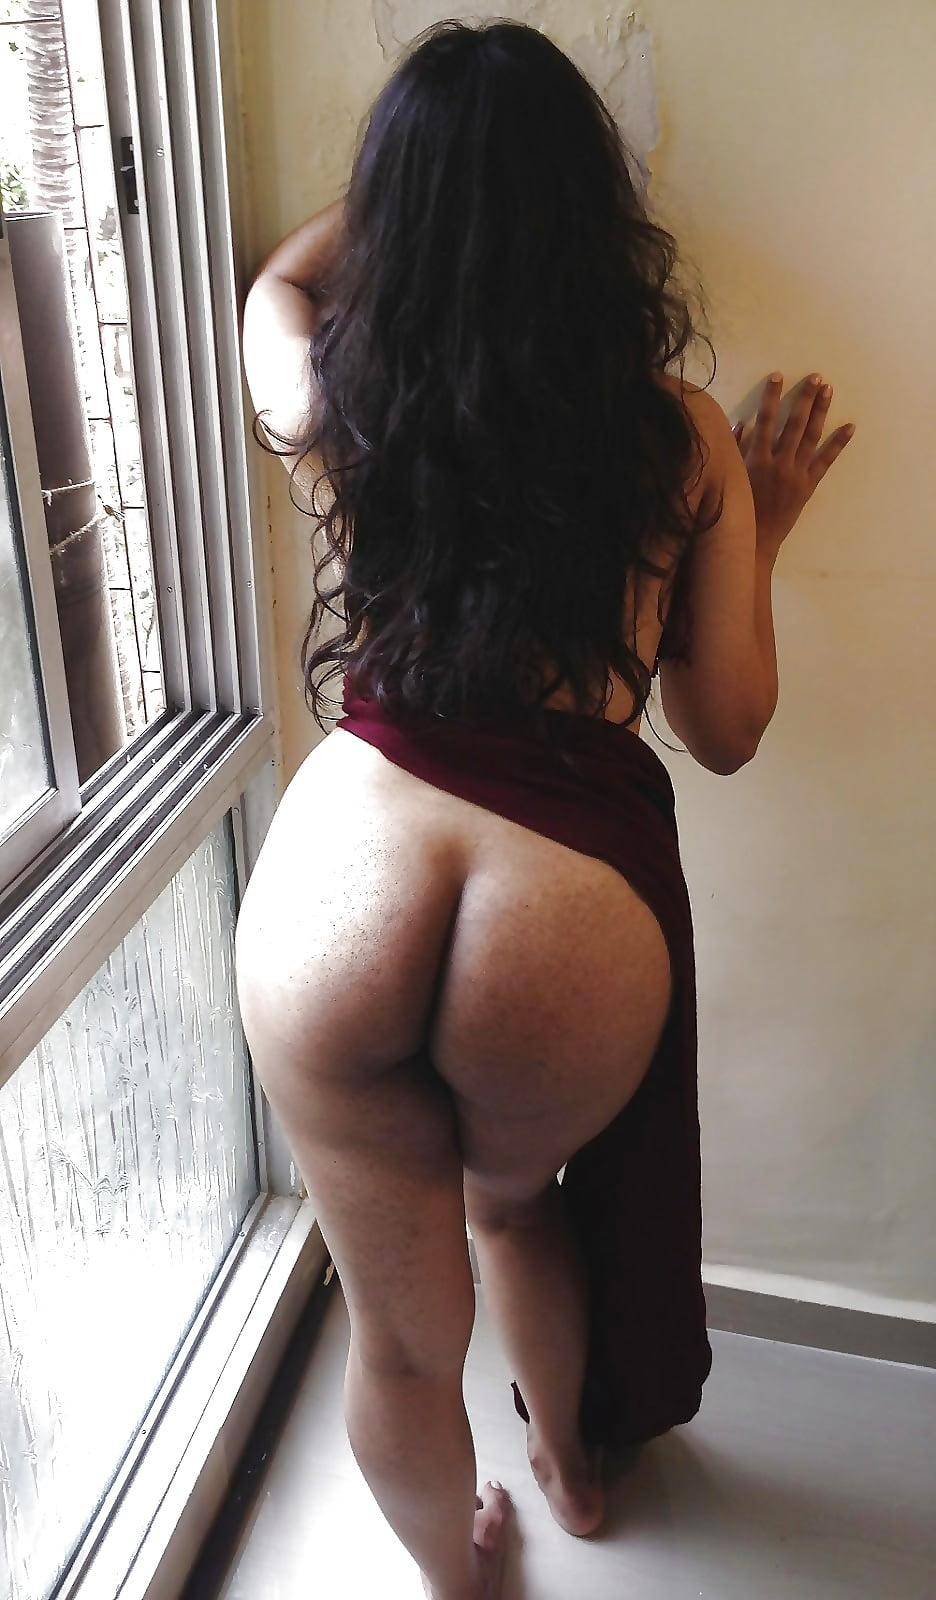 Indian Hot Ass Gallery